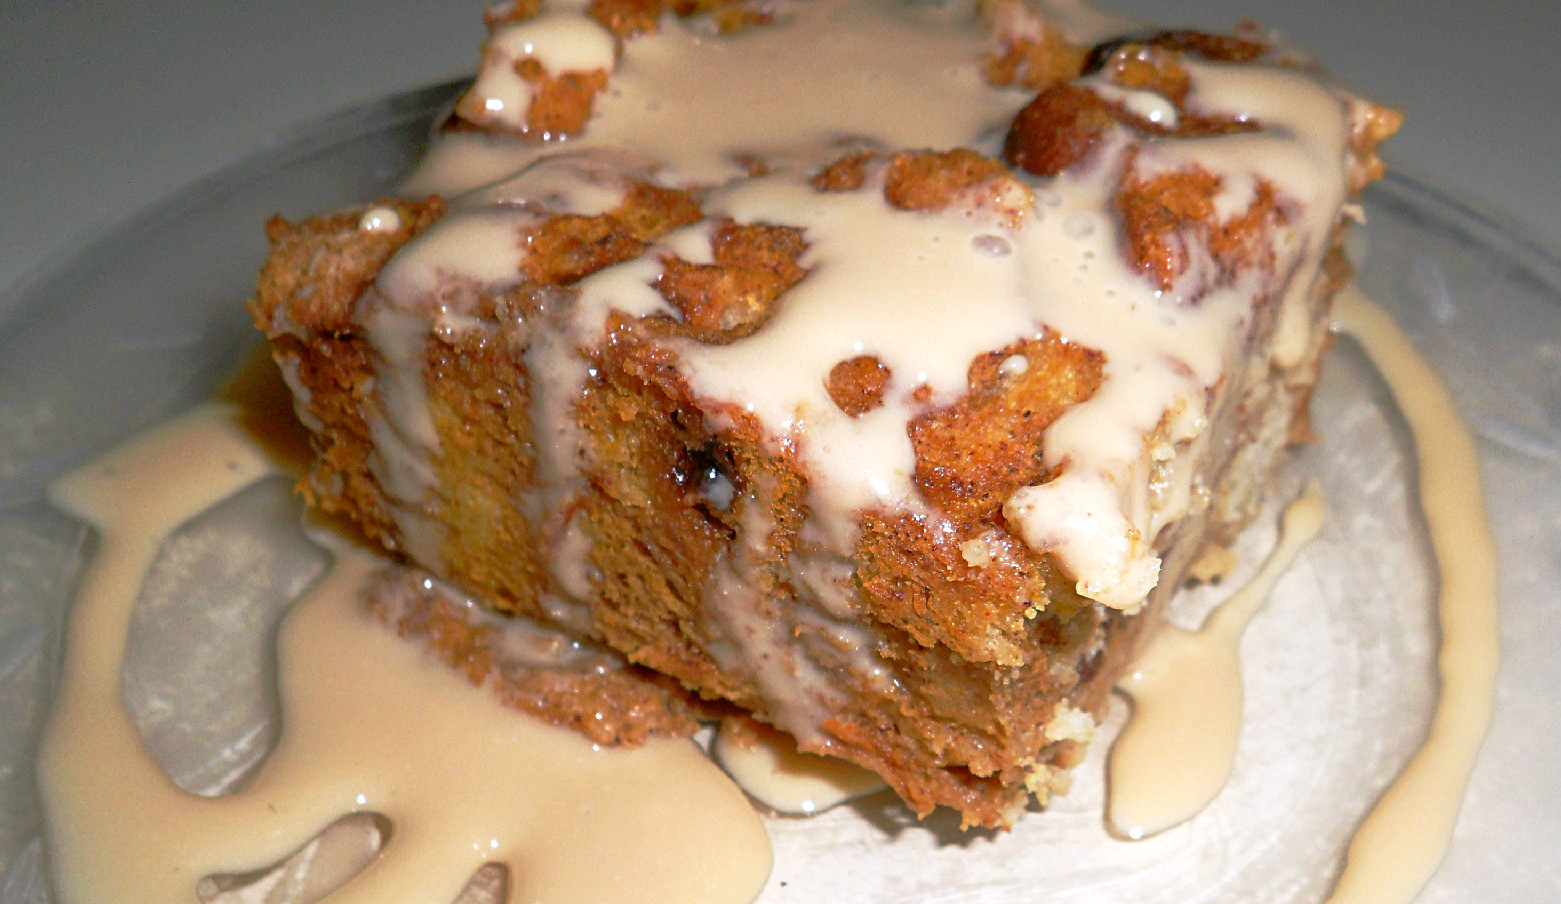 ... make one of my favorite bread pudding recipes: Pumpkin Bread Pudding